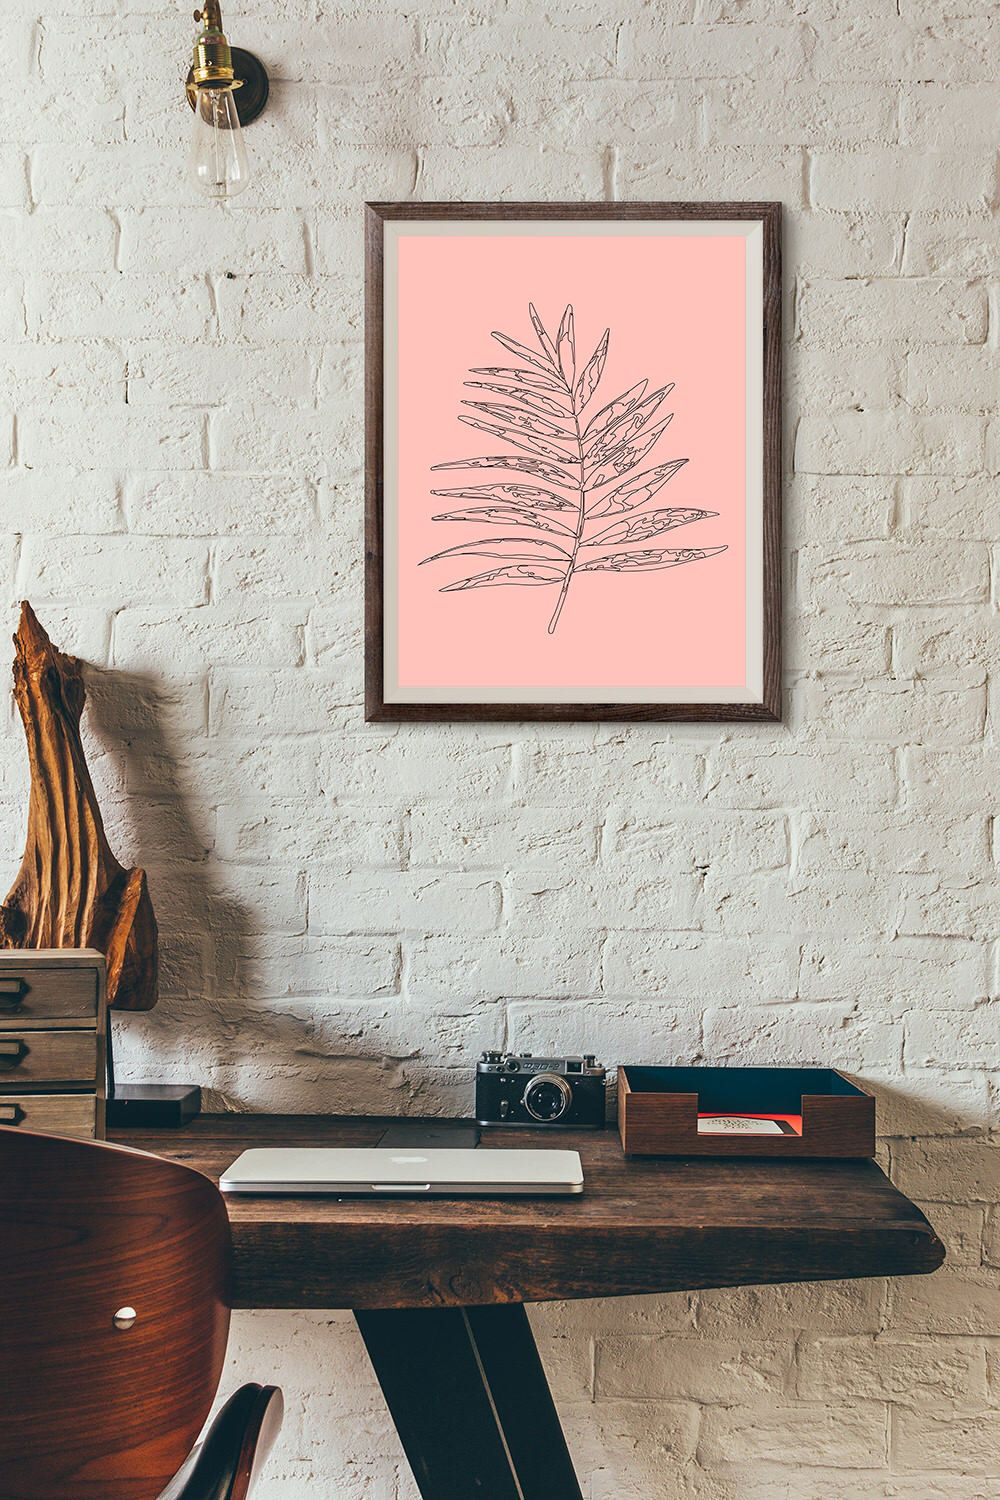 Excited To Share The Latest Addition To My Etsy Shop Hipster Room Prints Chill Out Wall Prints Loft Style Wall Art Br Etsy Prints Affordable Prints Prints